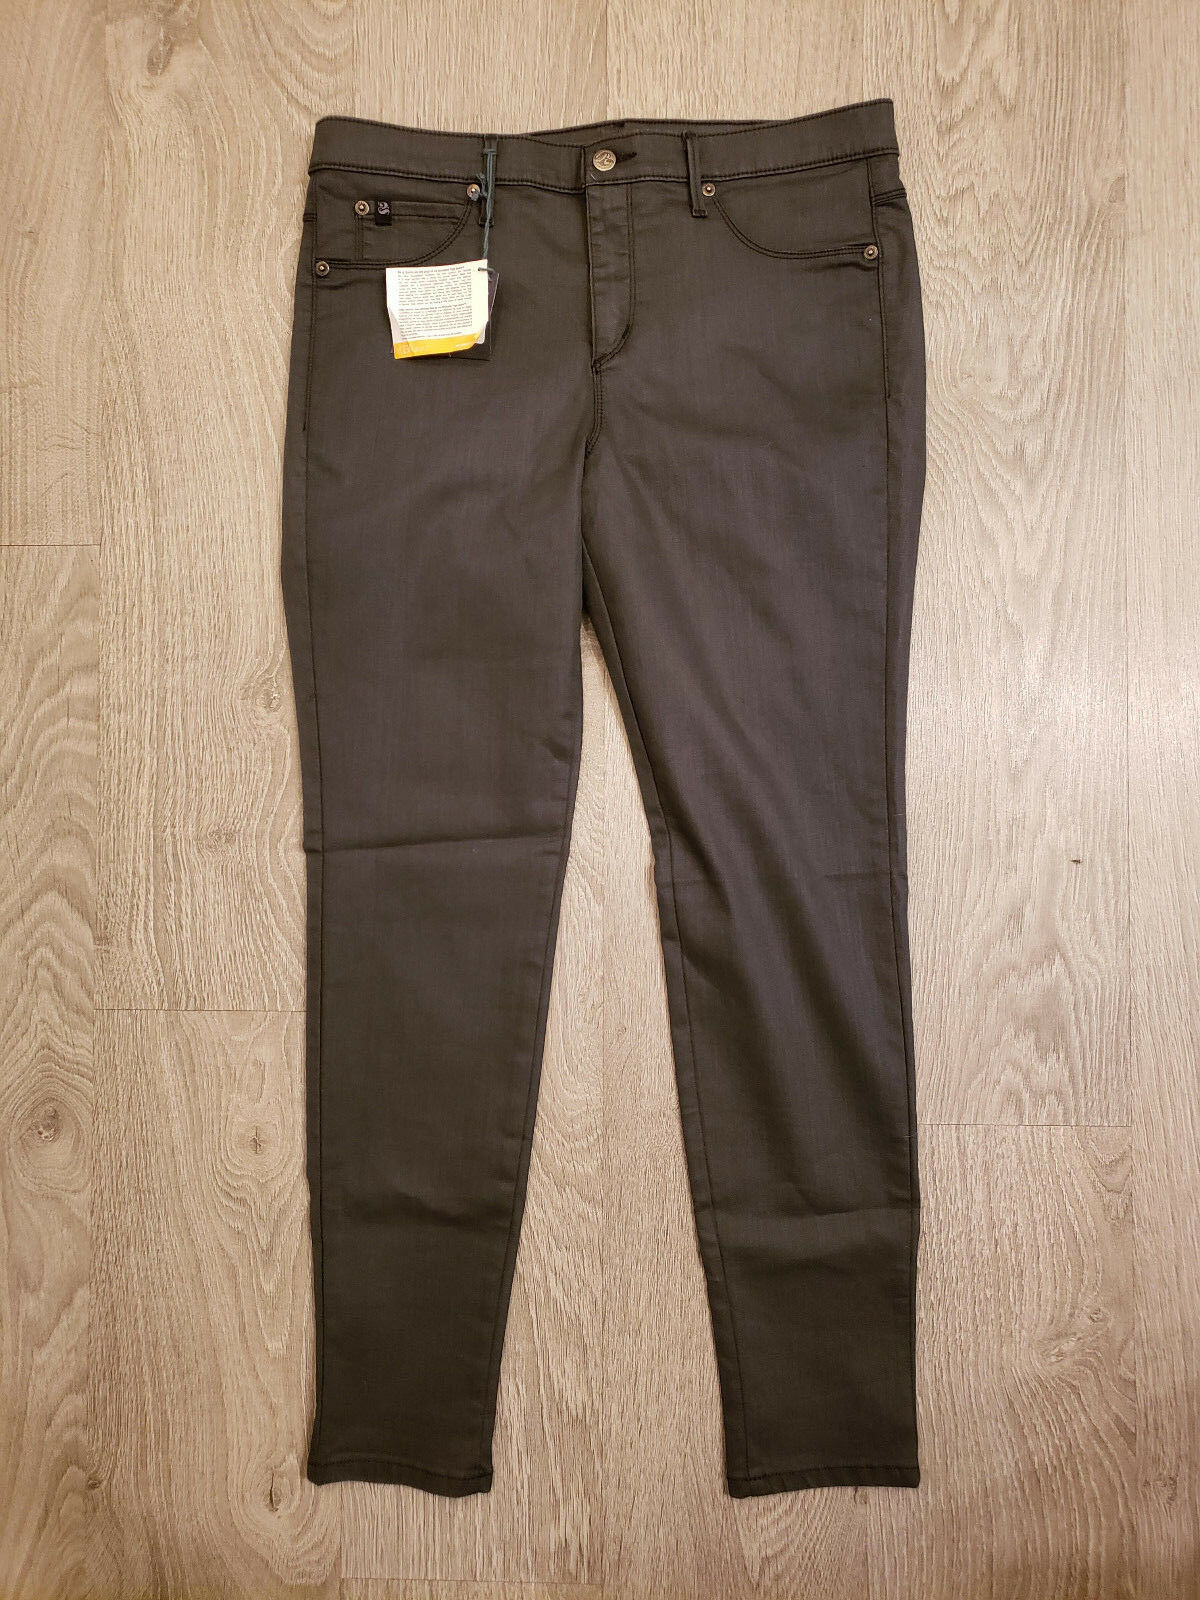 Second Yoga Jeans Women's - Asphalt - Classic Rise Skinny - Size 33 - SWP1337